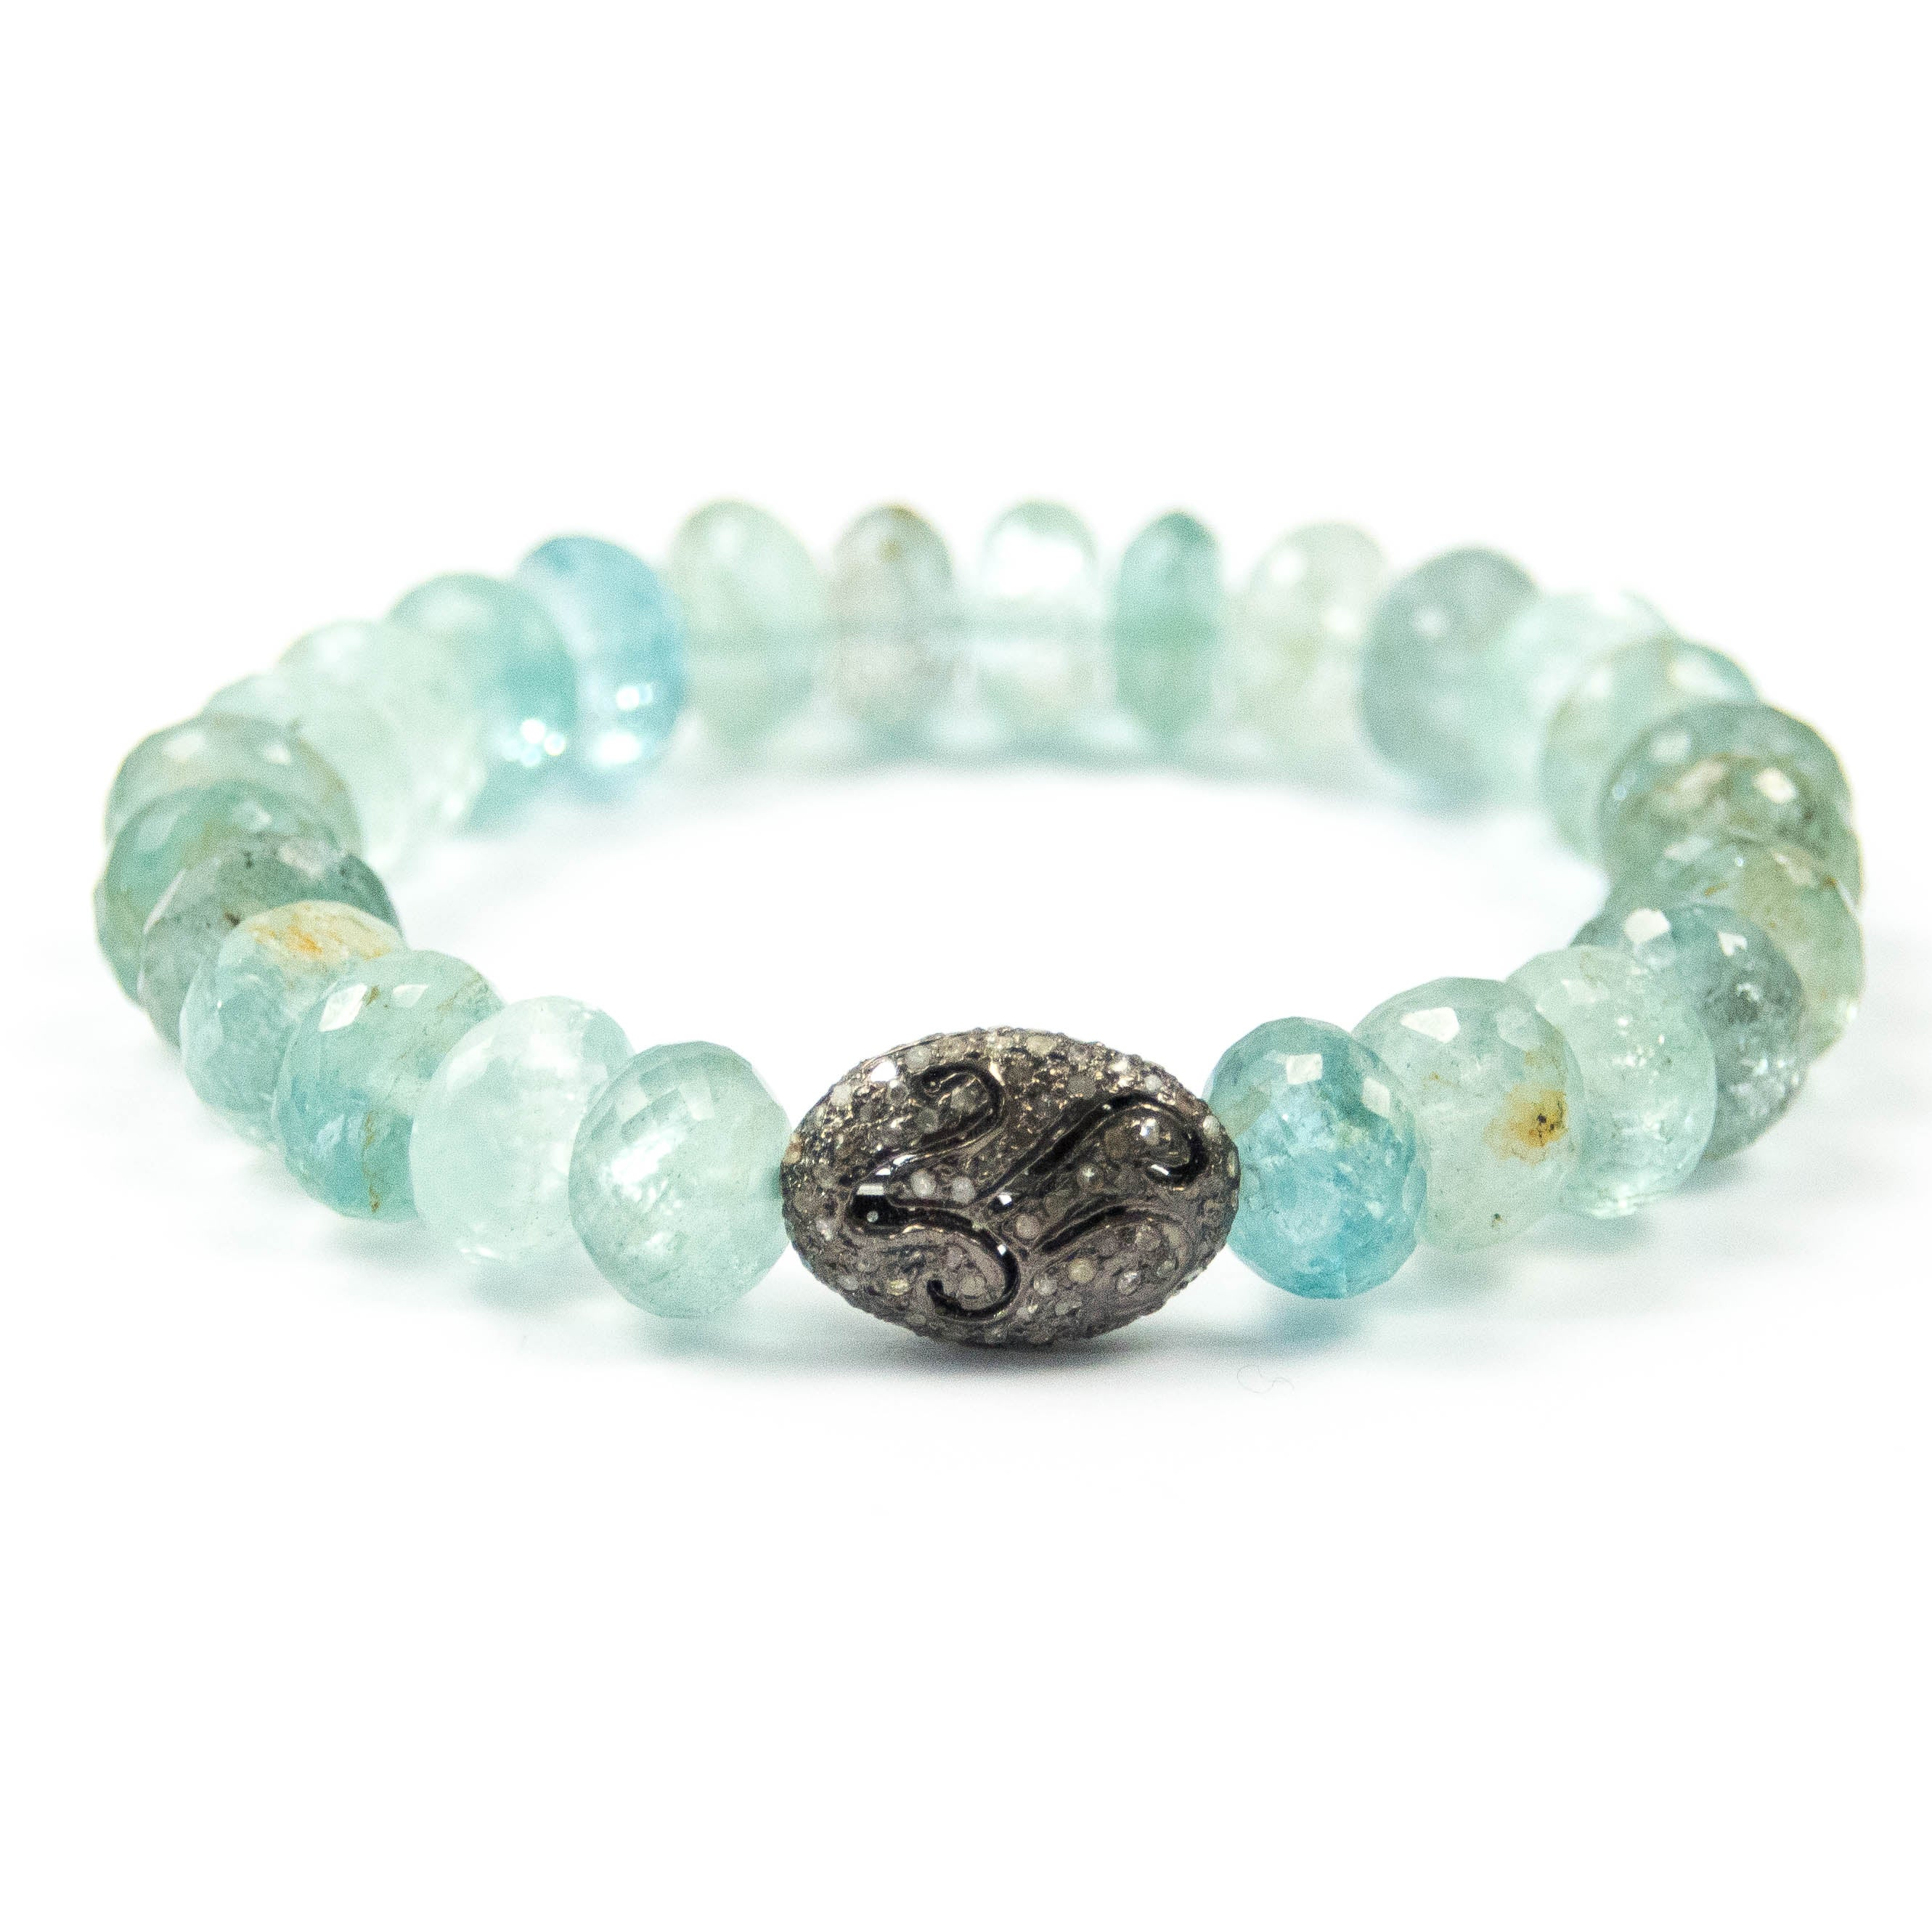 products by downstairs for prev men jewelry gloria kids shop bracelet aquamarine